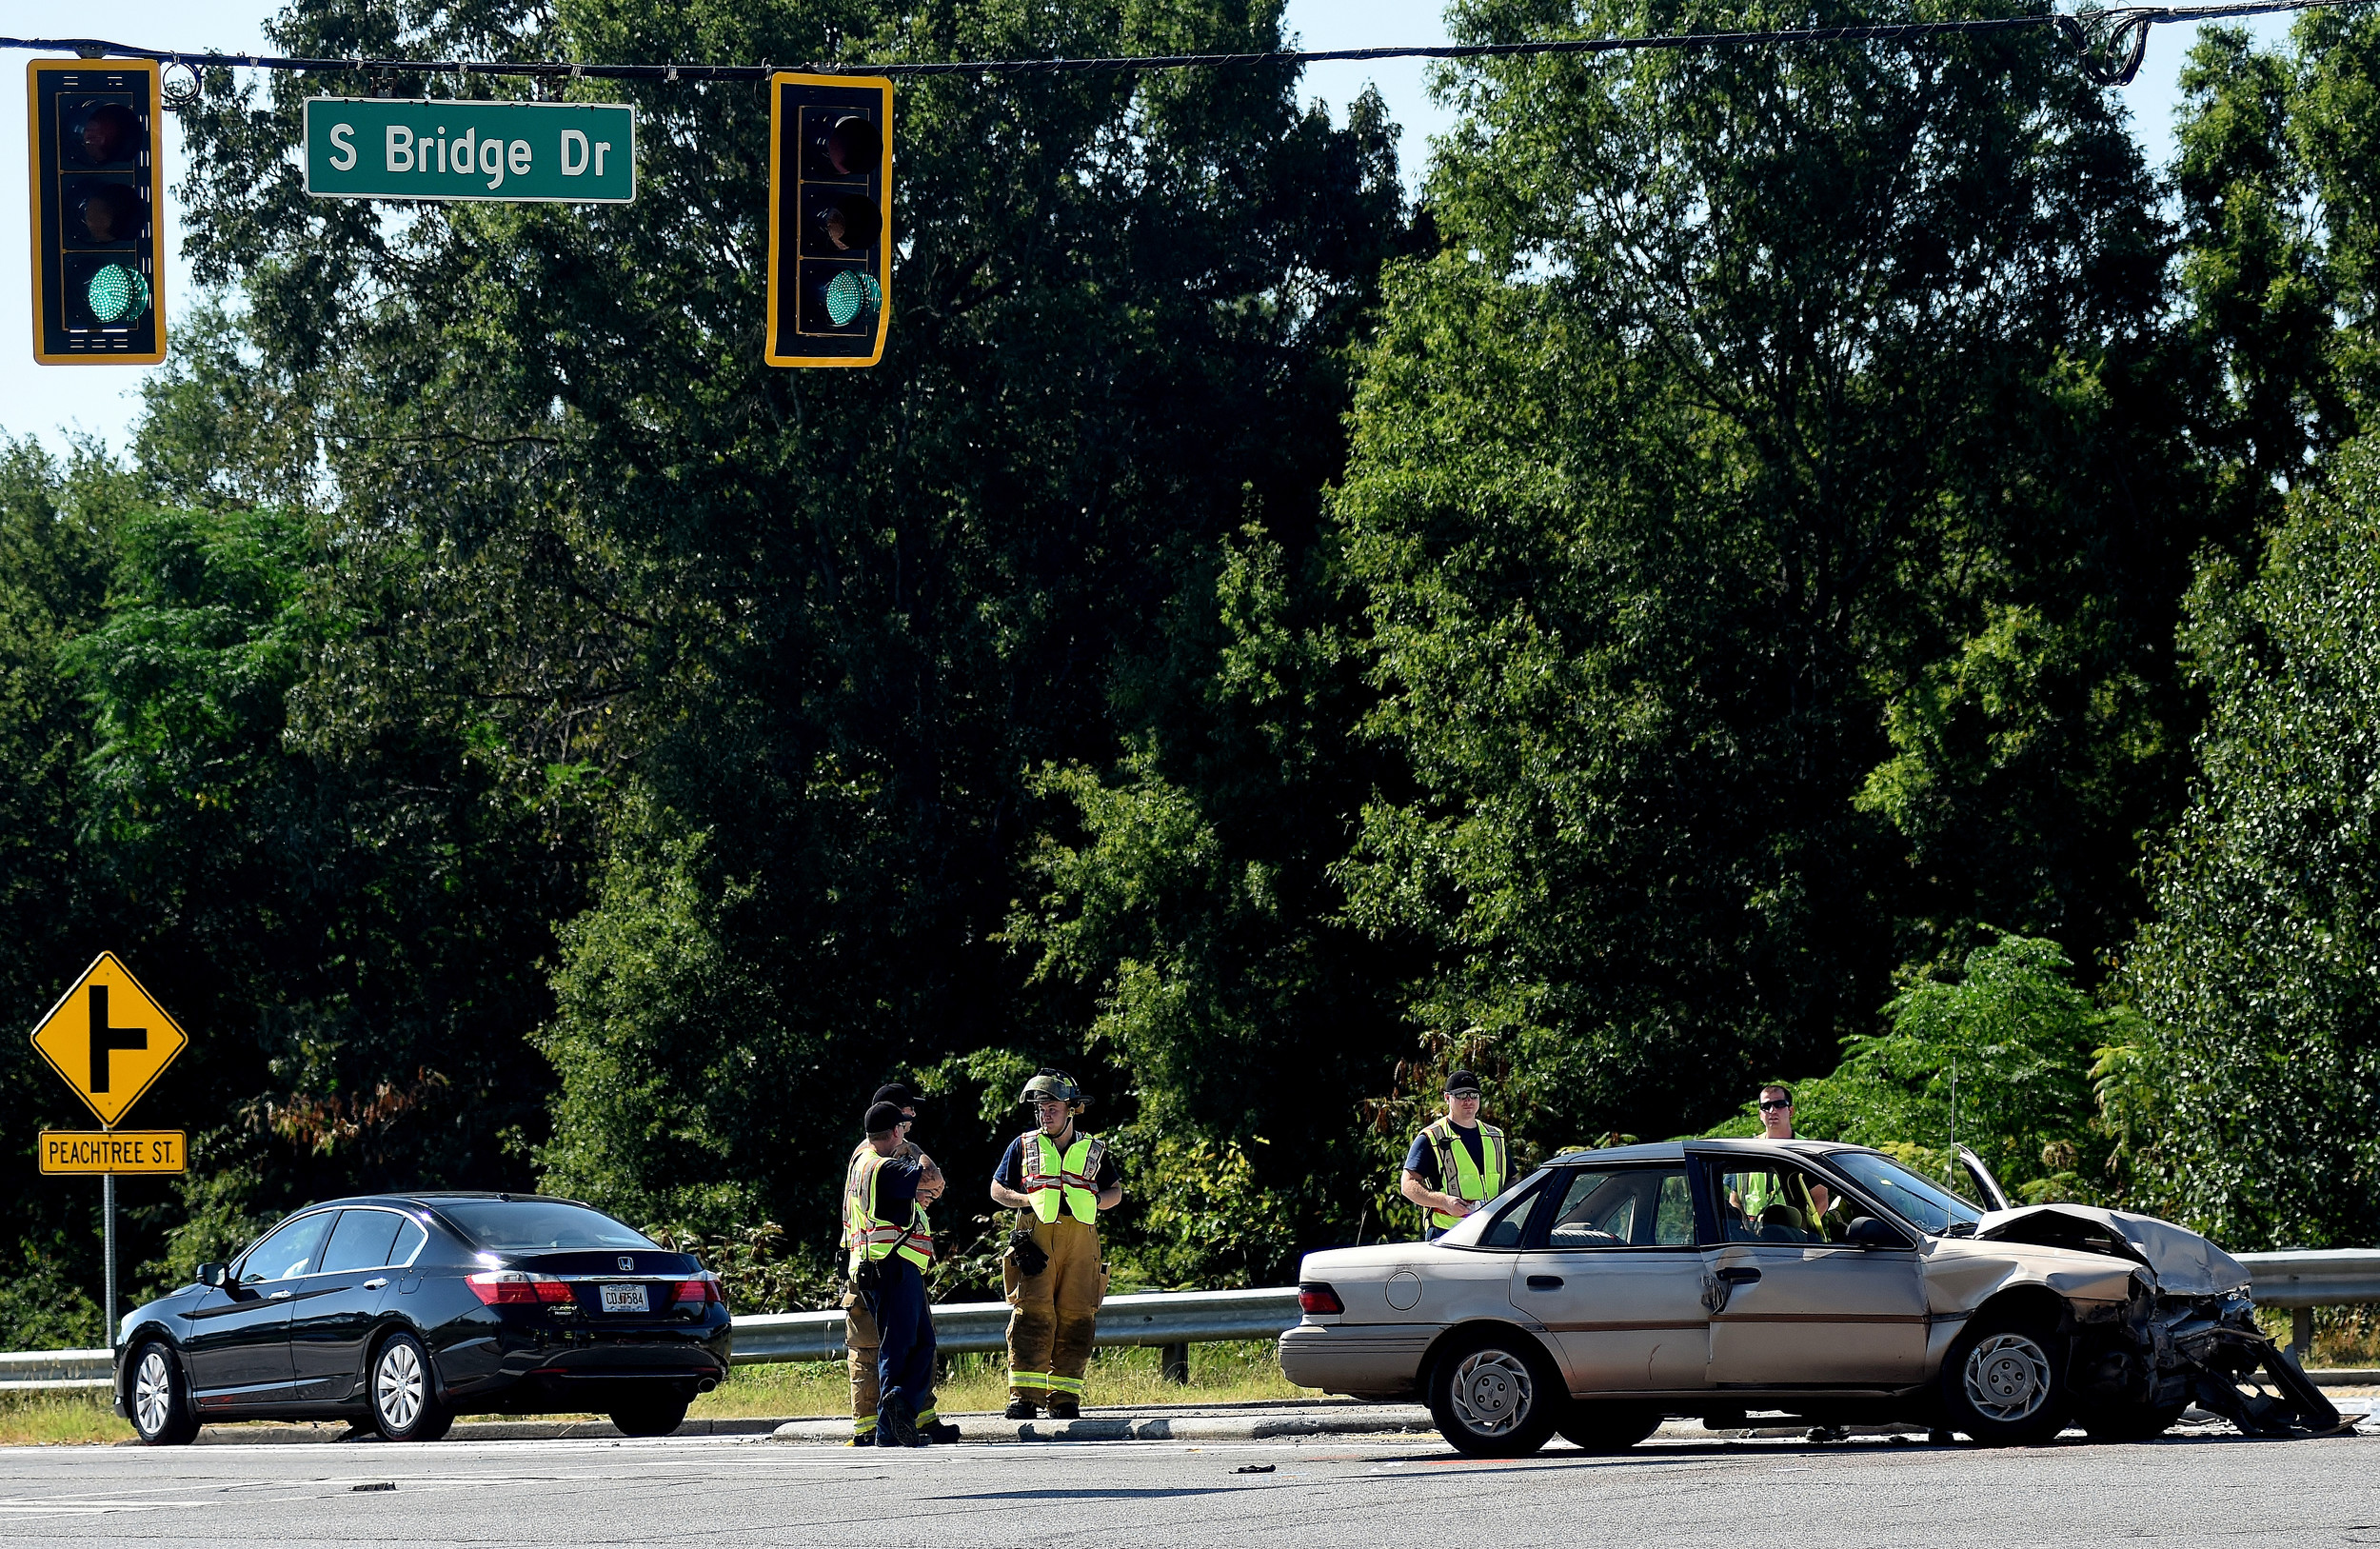 A wreck Friday morning at the intersection of Joe Frank Harris Parkway and South Bridge Drive in Cartersville resulted in one fatality and two other hospitalizations.